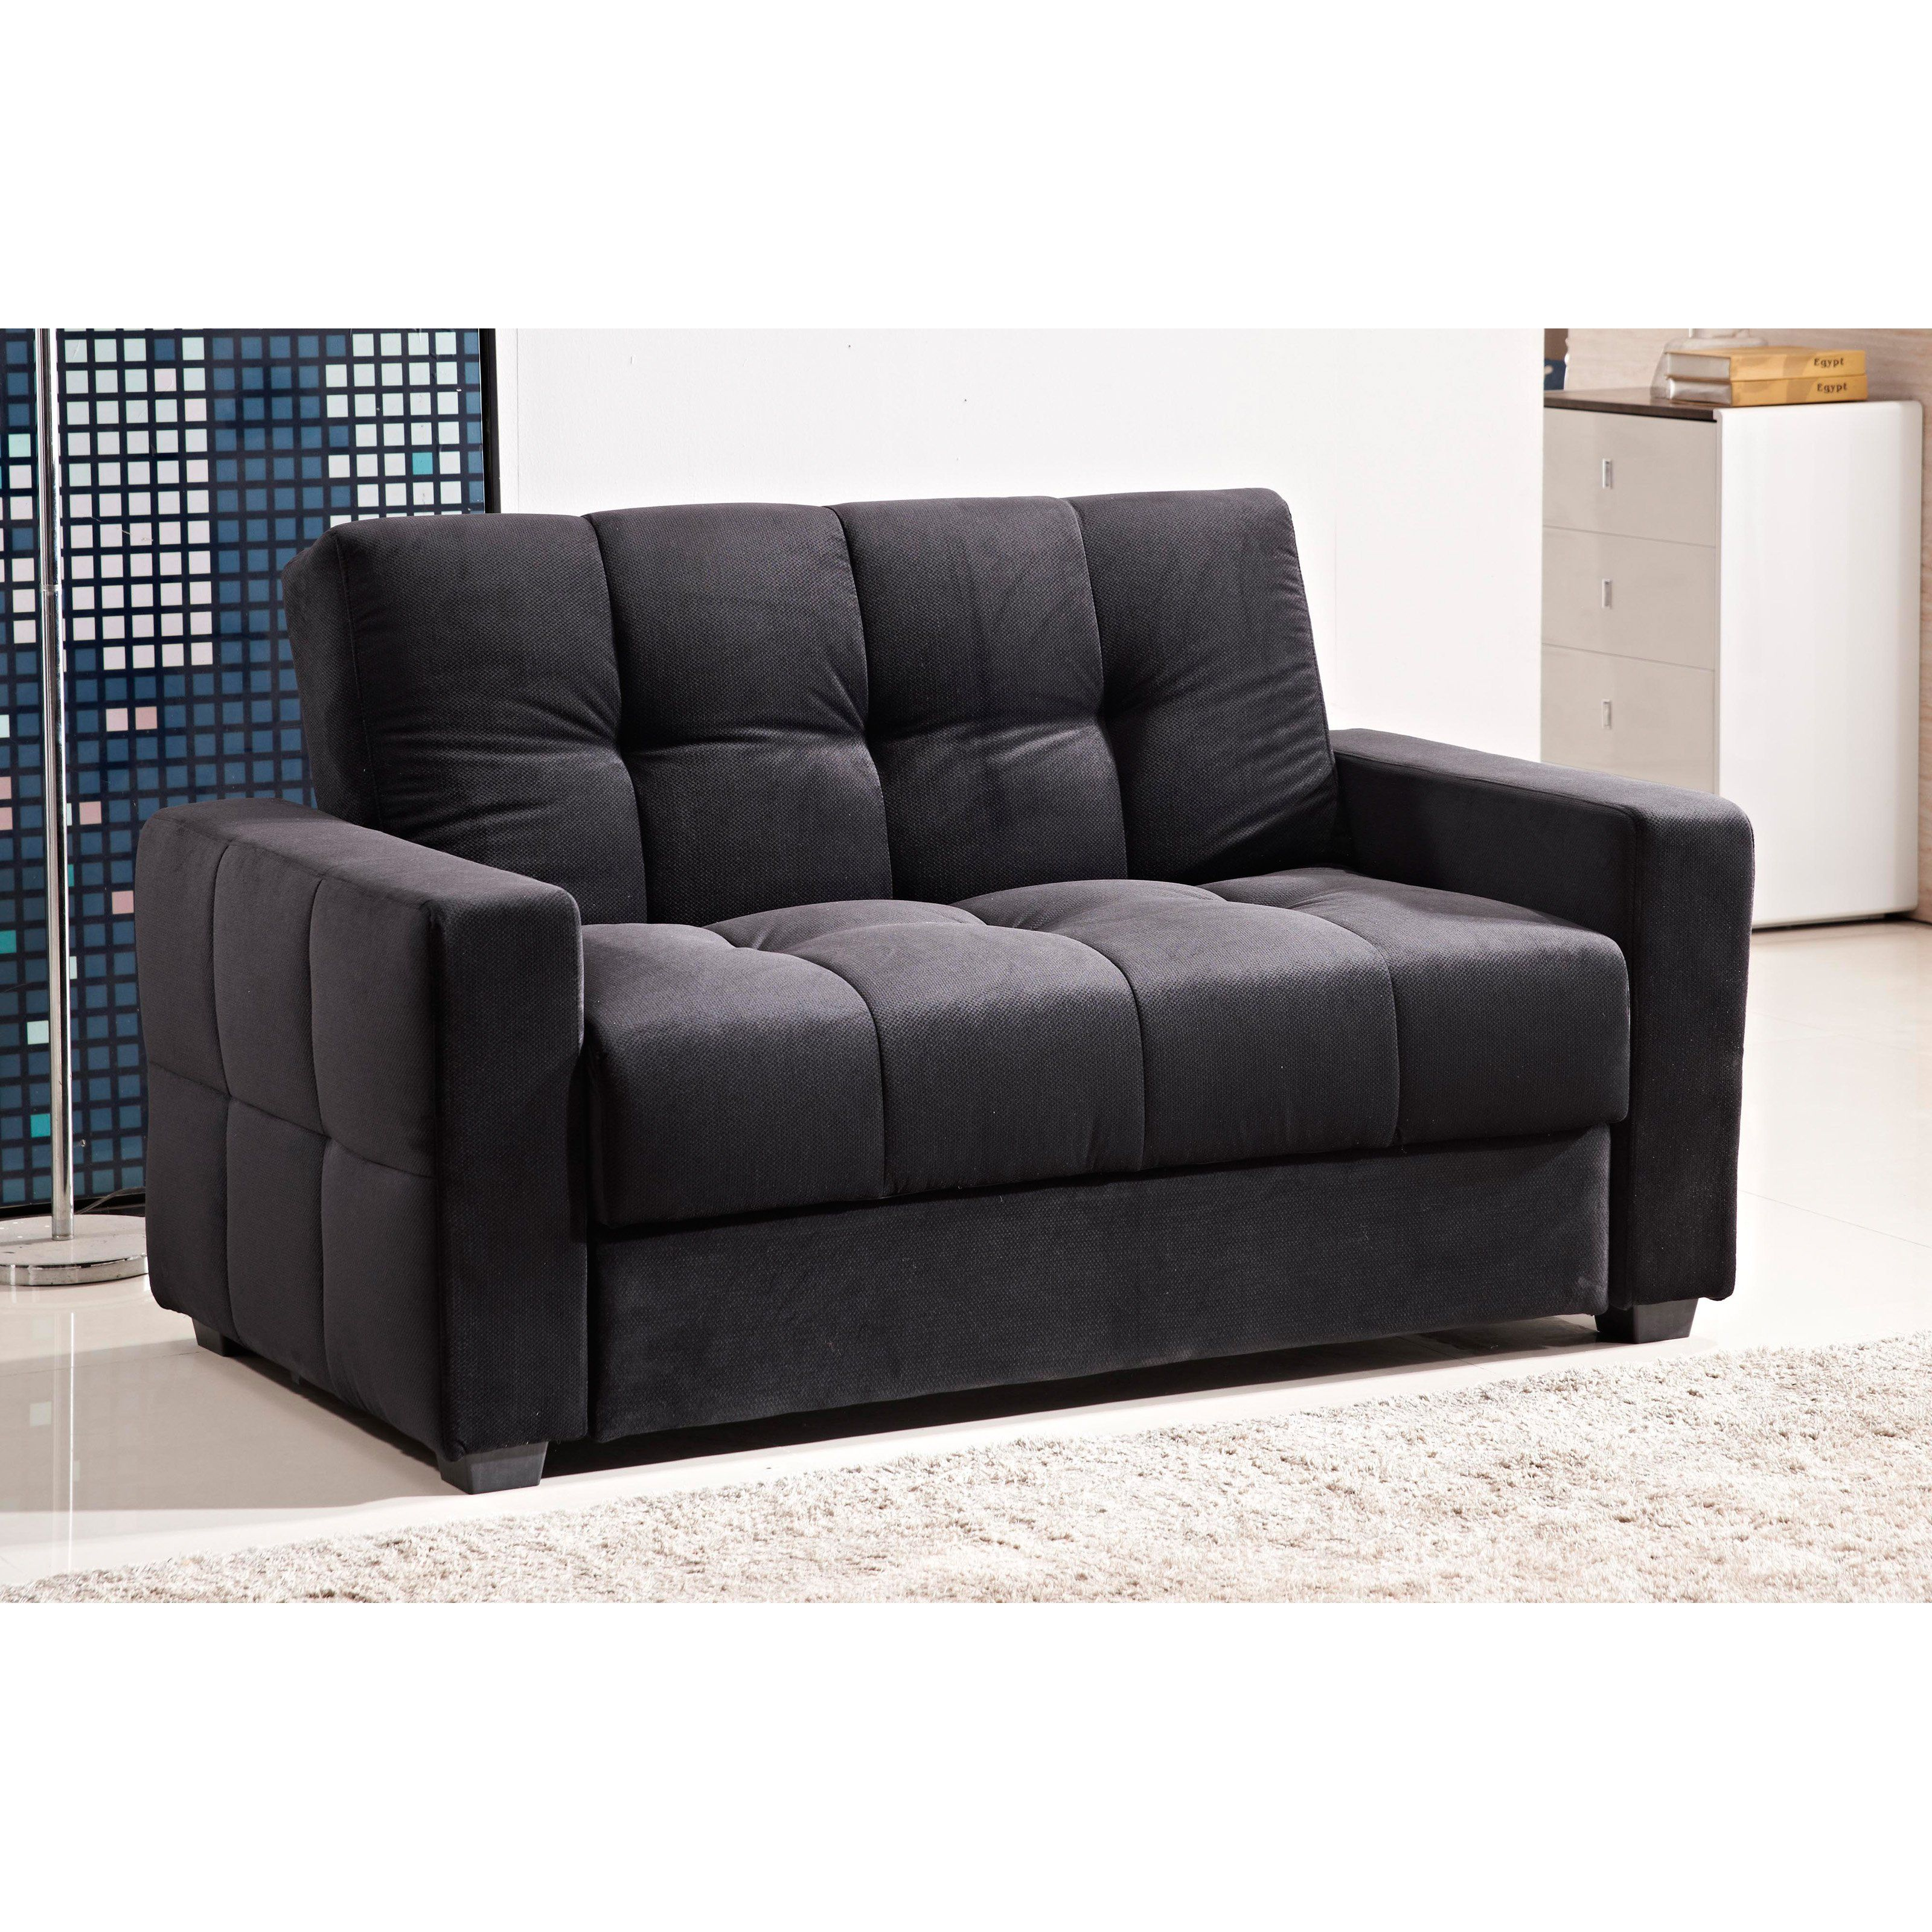 seat awesome bed futons beds loveseat love of thesofa ikea sleeper twin sofa